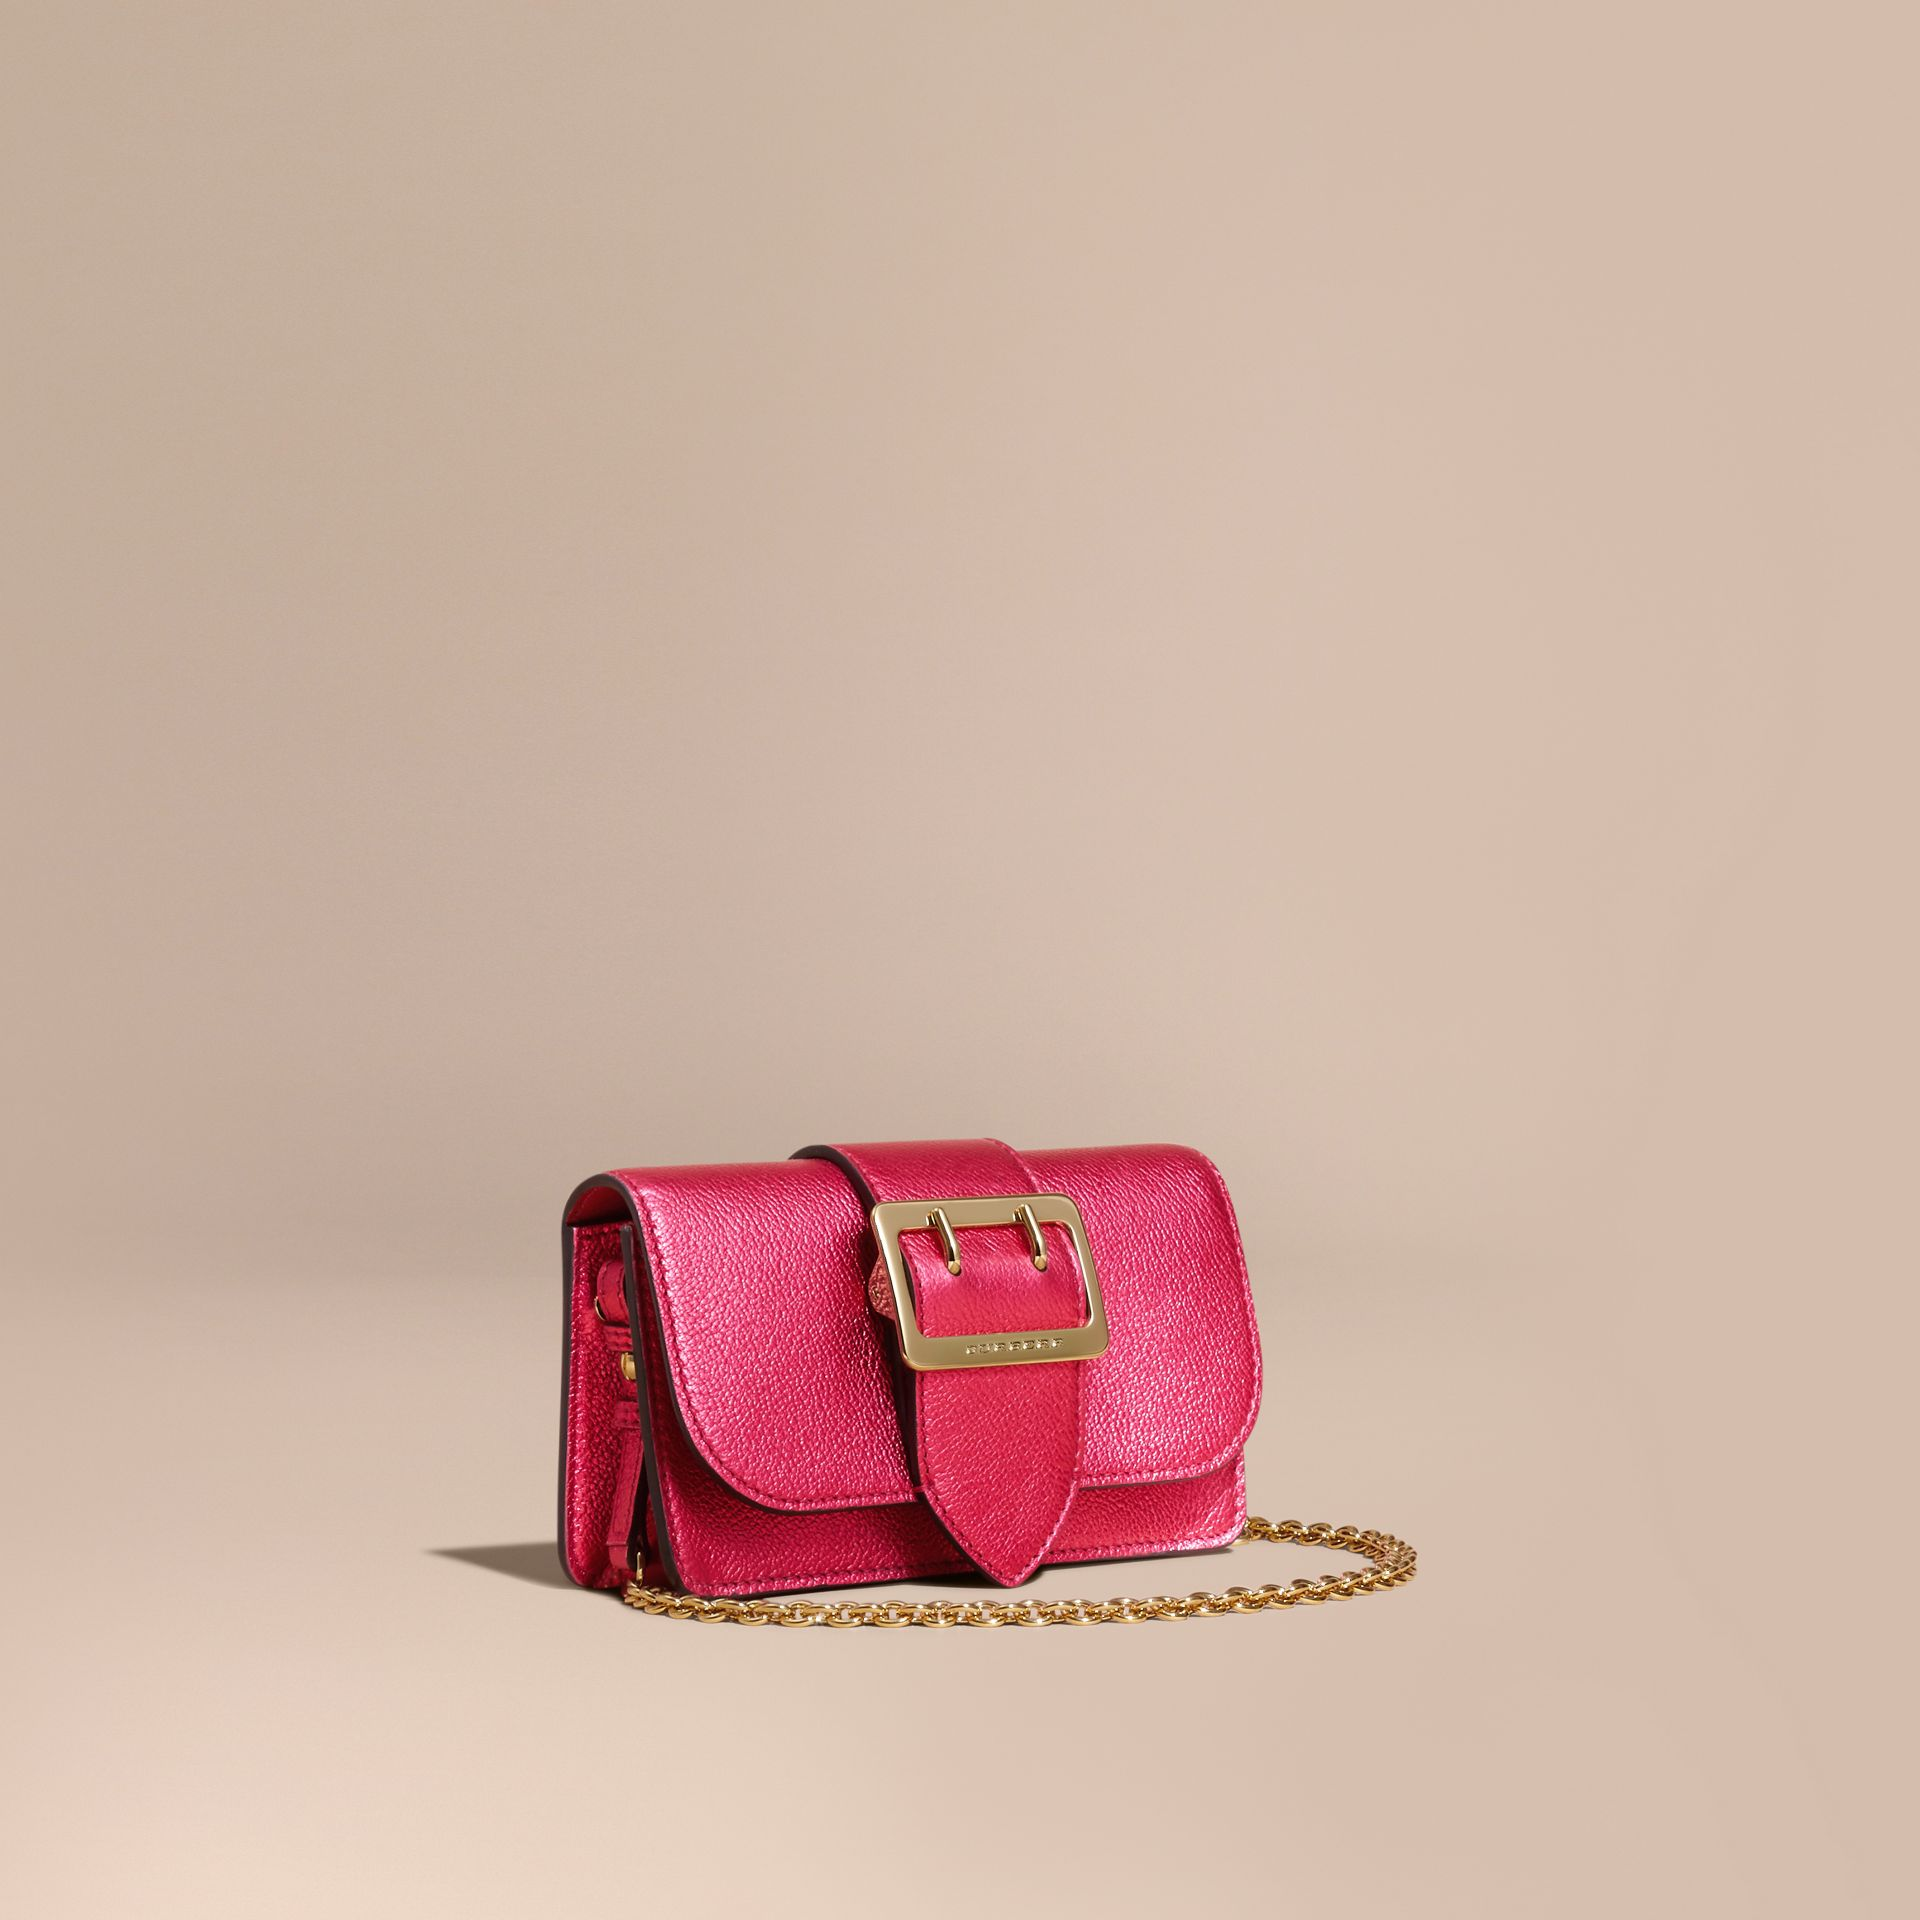 Bright pink The Mini Buckle Bag in Metallic Grainy Leather Bright Pink - gallery image 1